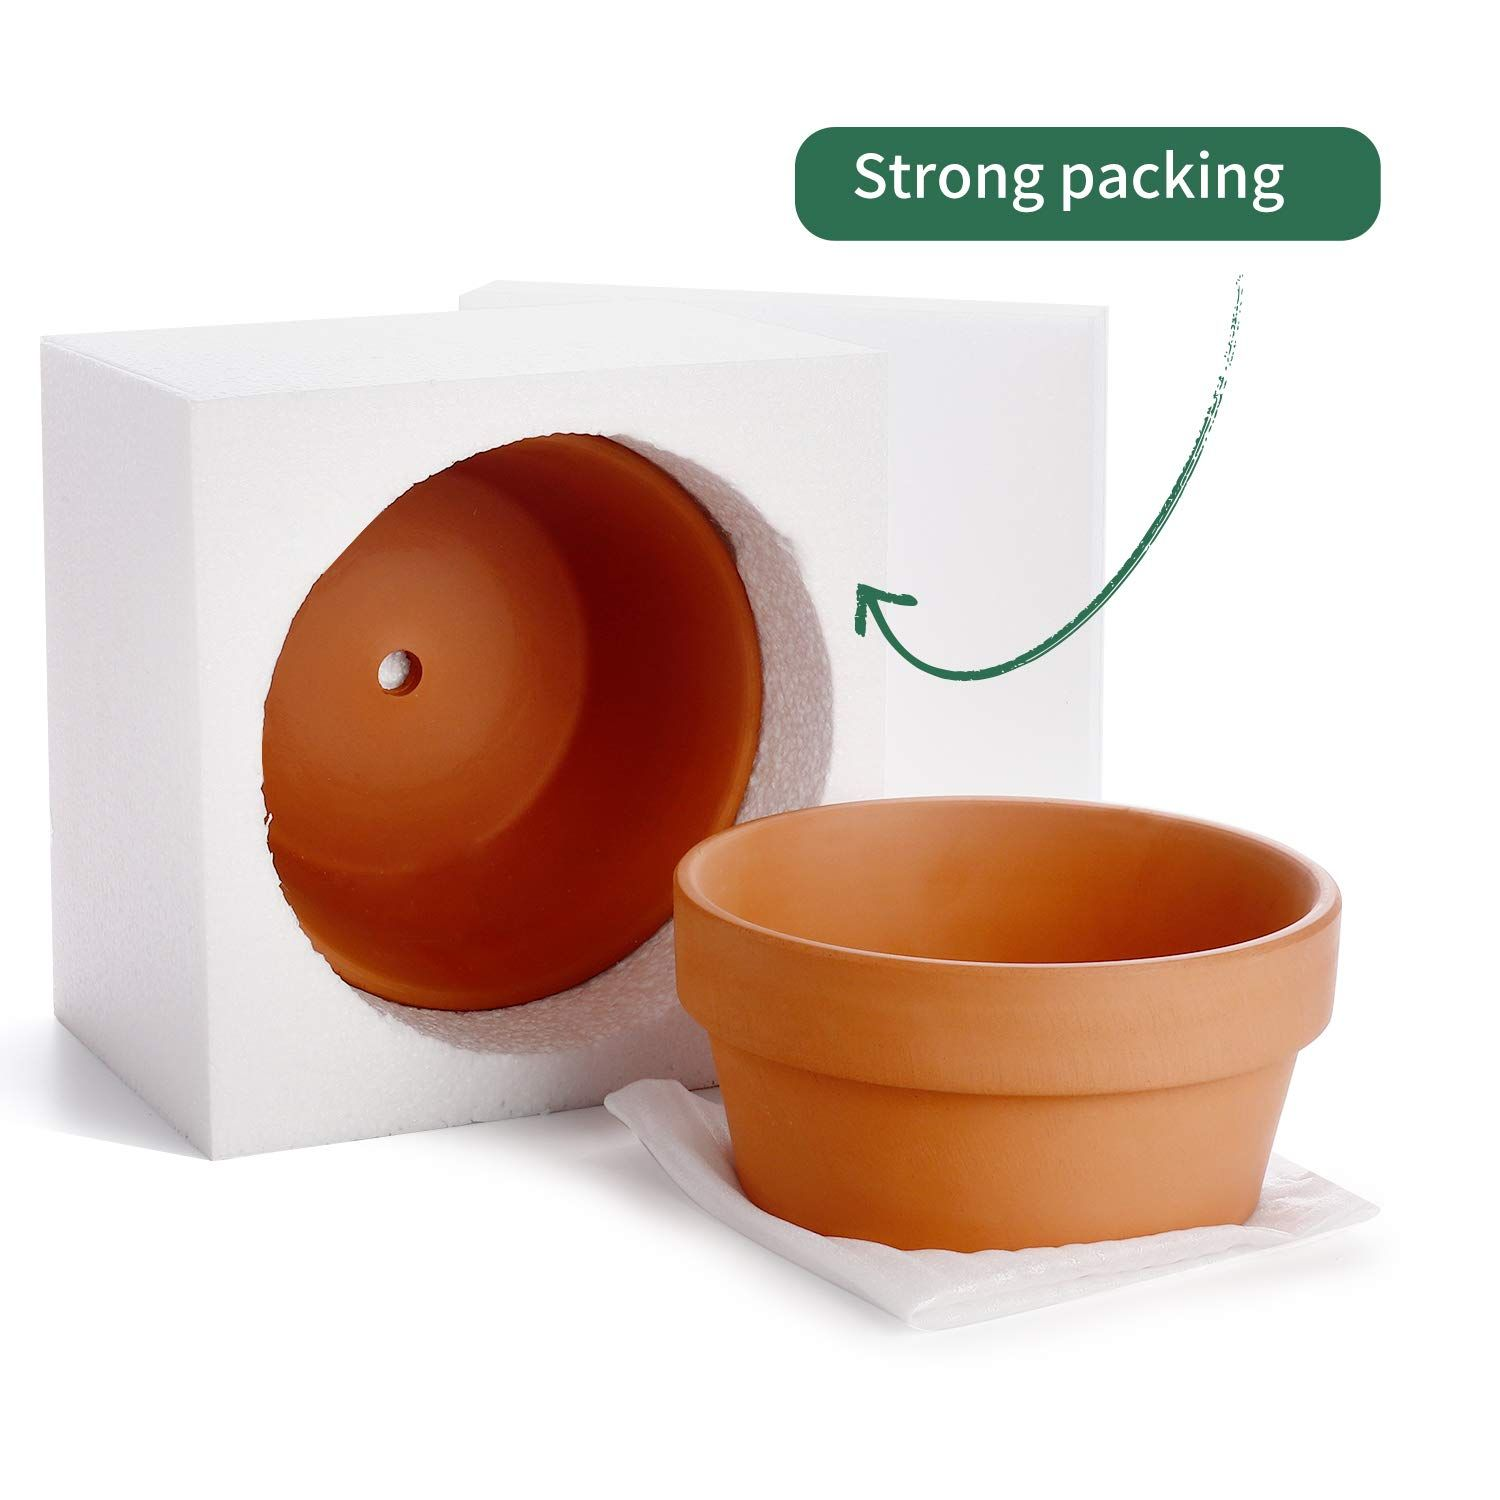 Potey Terracotta Shallow Planters For Succulent 6 1 Inch Cactus Plant Containers Indoor Garden Bonsai Pots With In 2020 Shallow Planters Container Plants Bonsai Pots